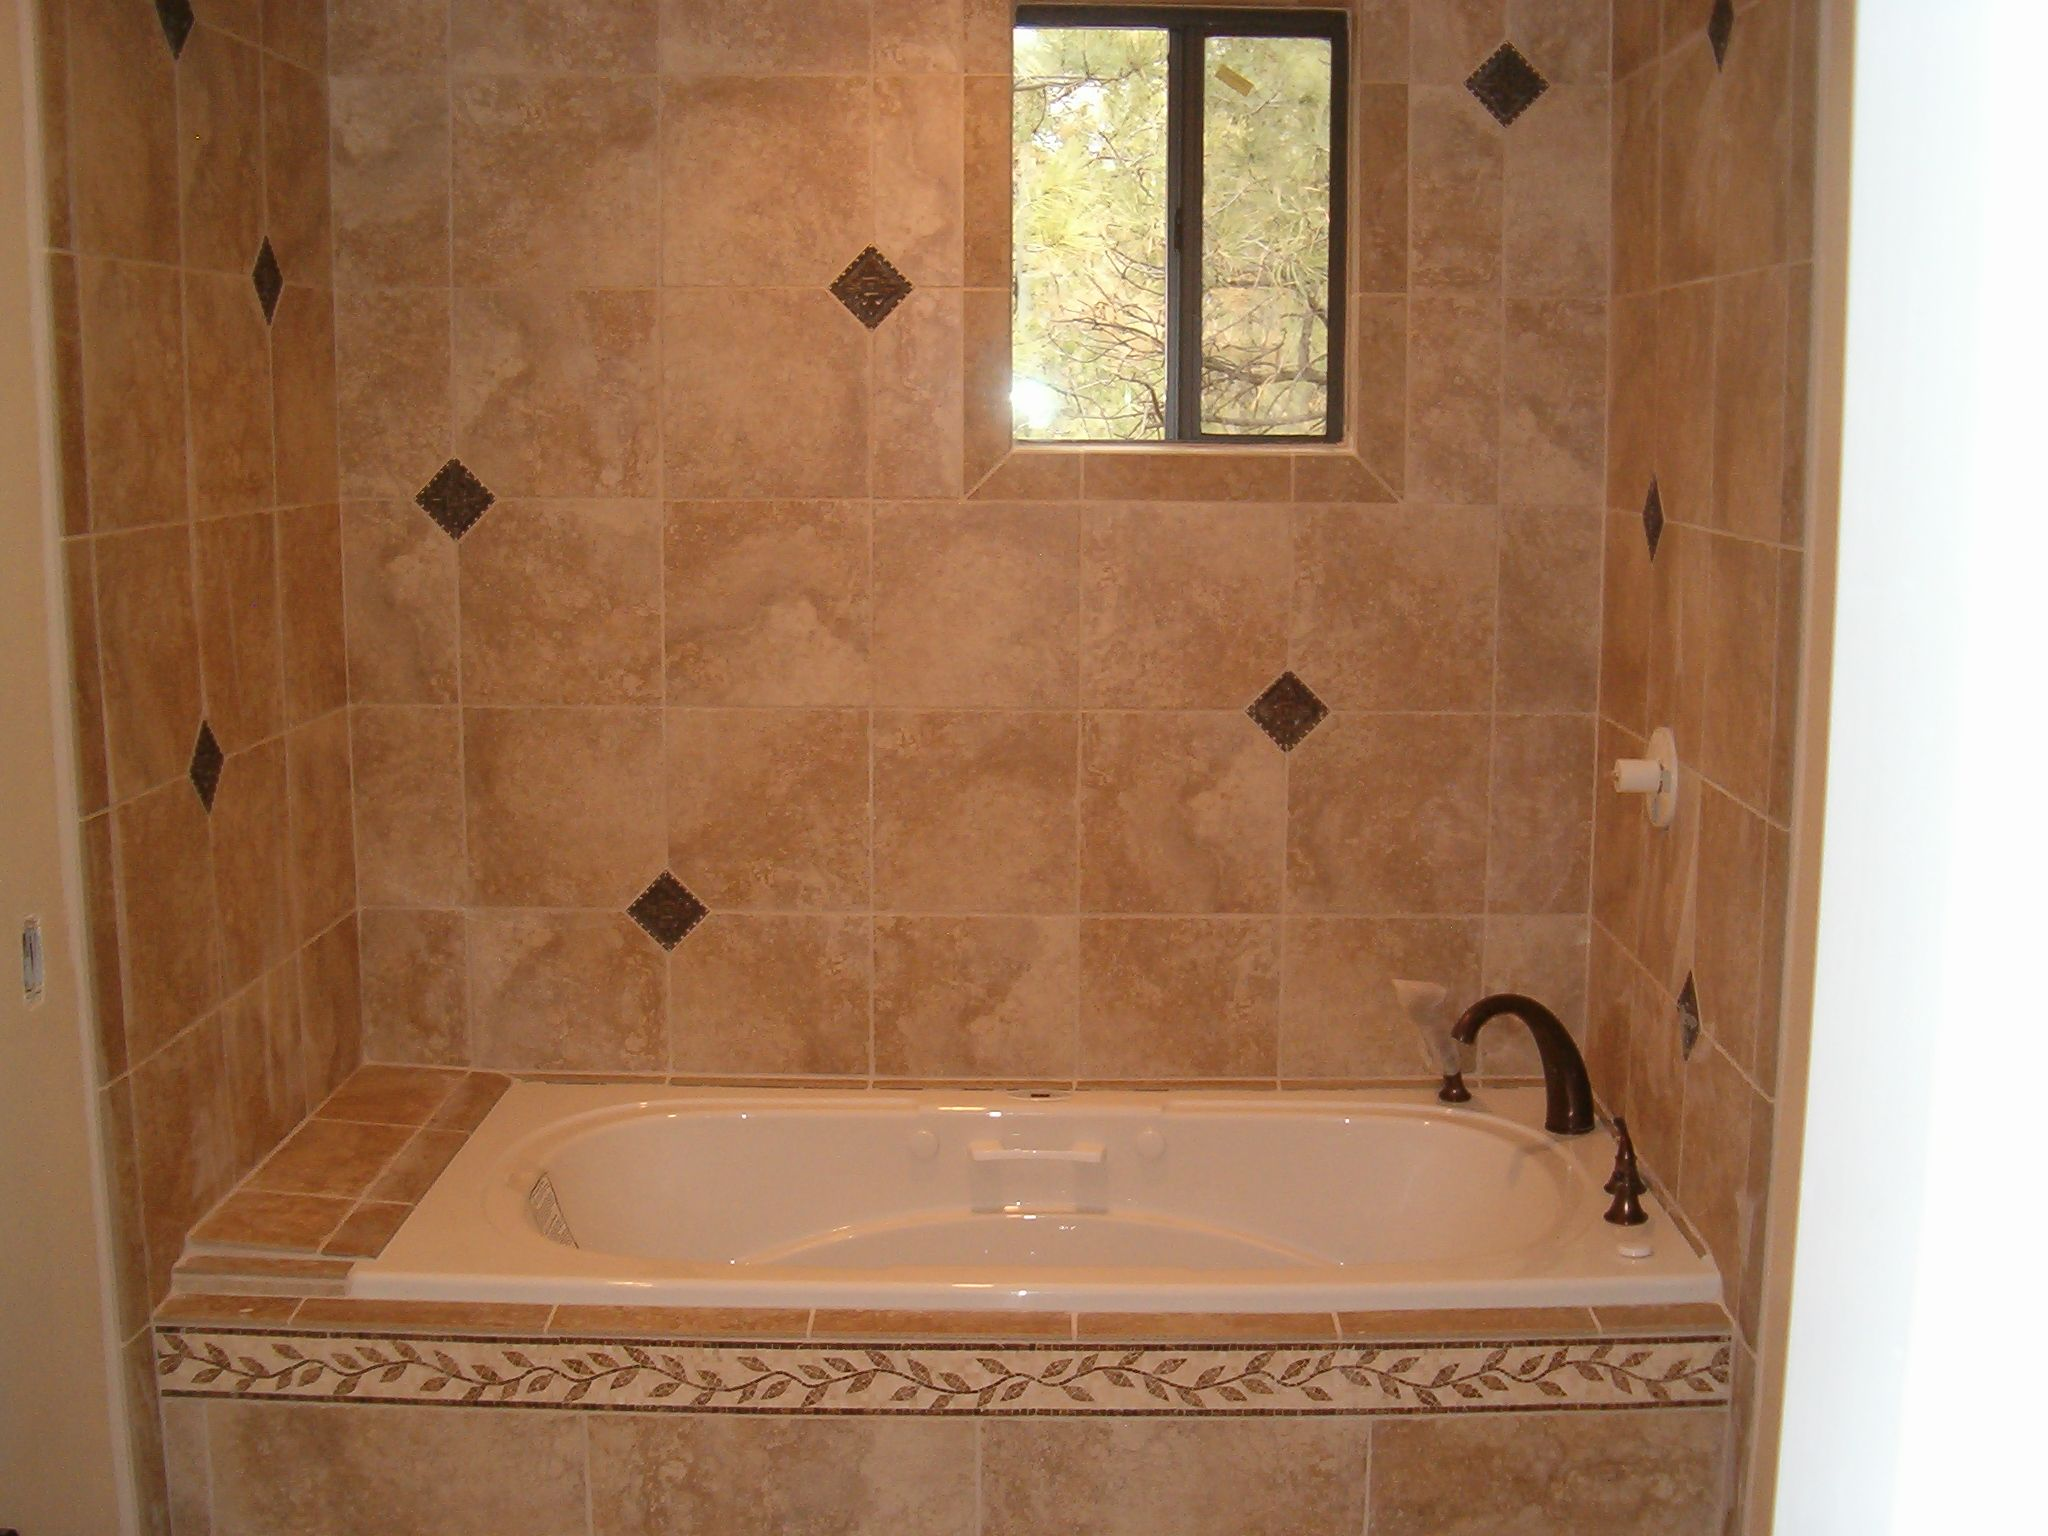 Bathroom Tub And Shower Tile Designs : Tile floor images all around floorings bathroom tub